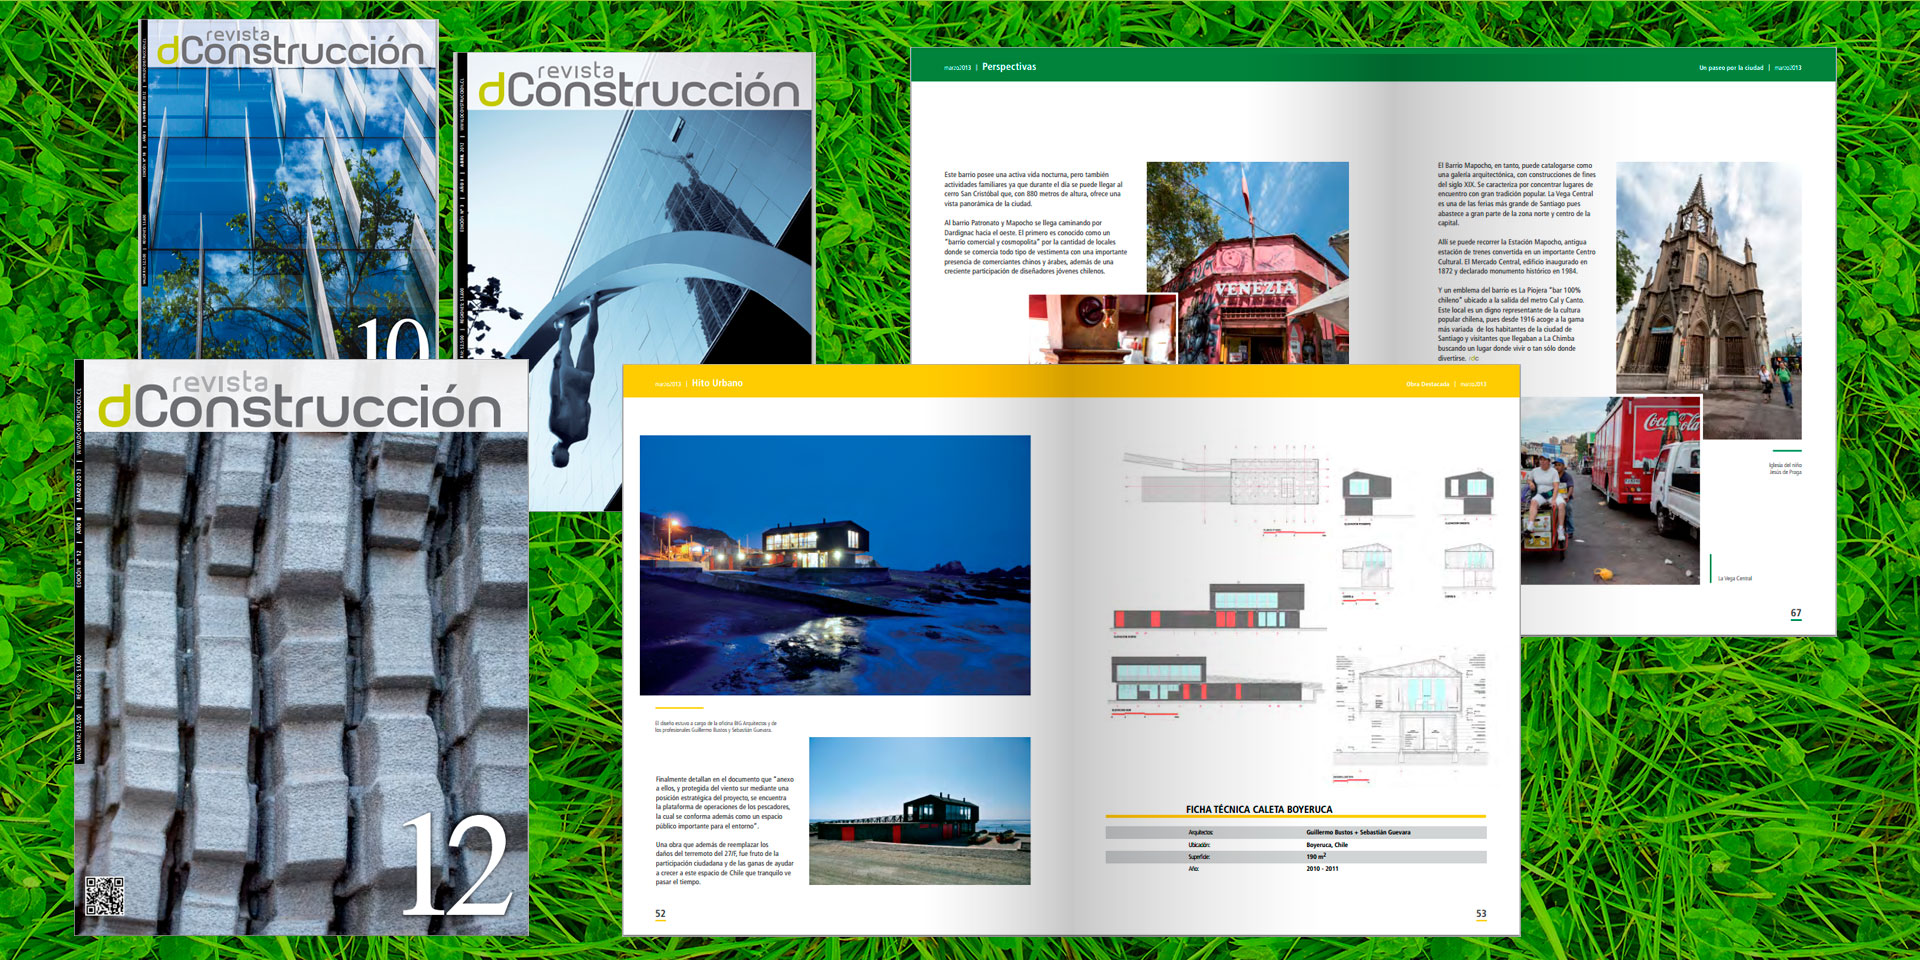 revista-dconstruccion